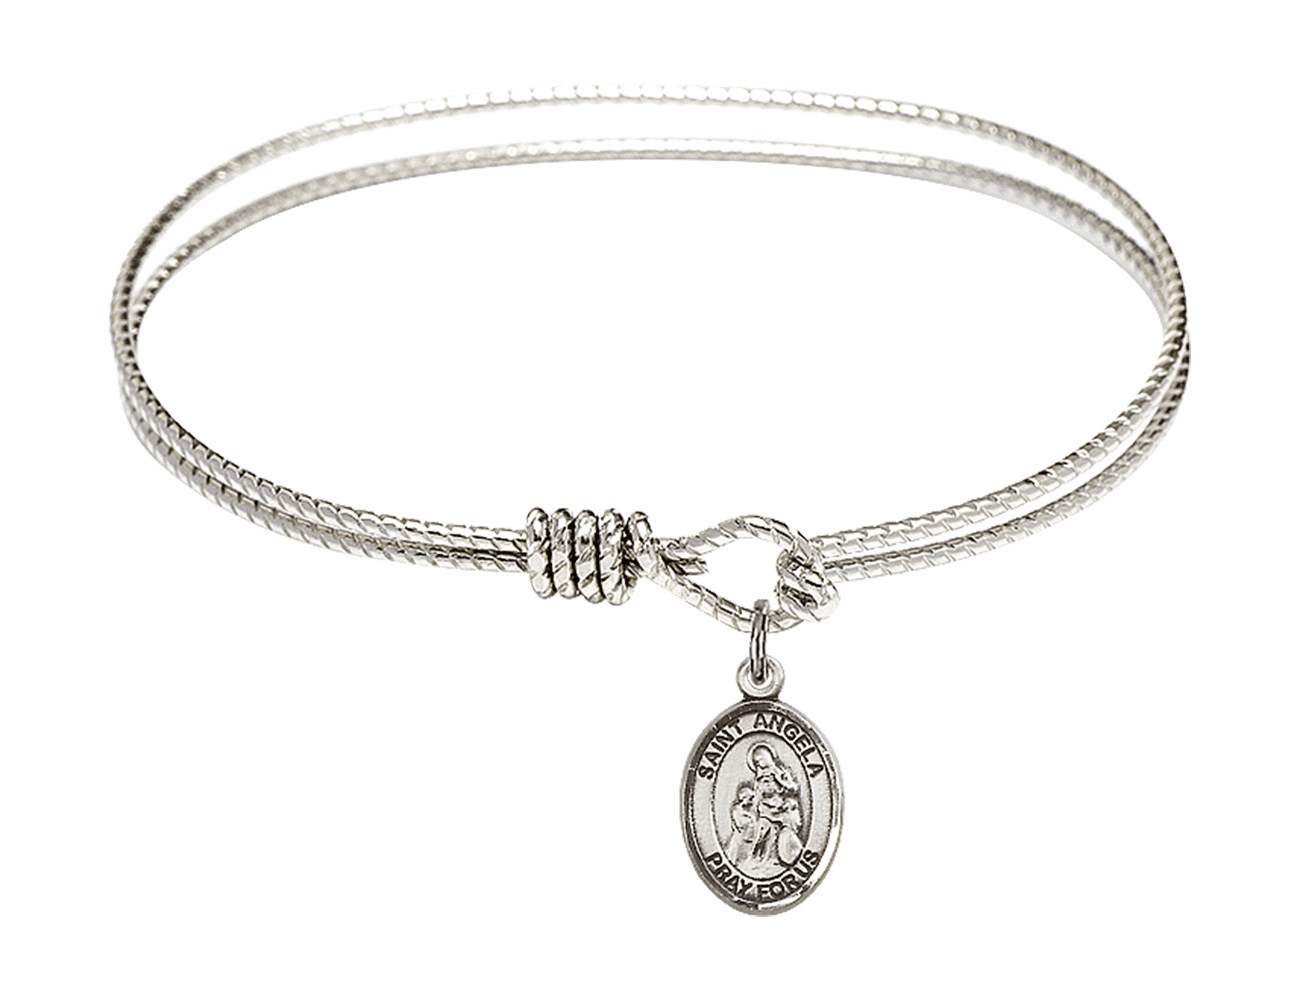 St Angela Merici Textured Bangle w/Sterling Charm Bracelet by Bliss